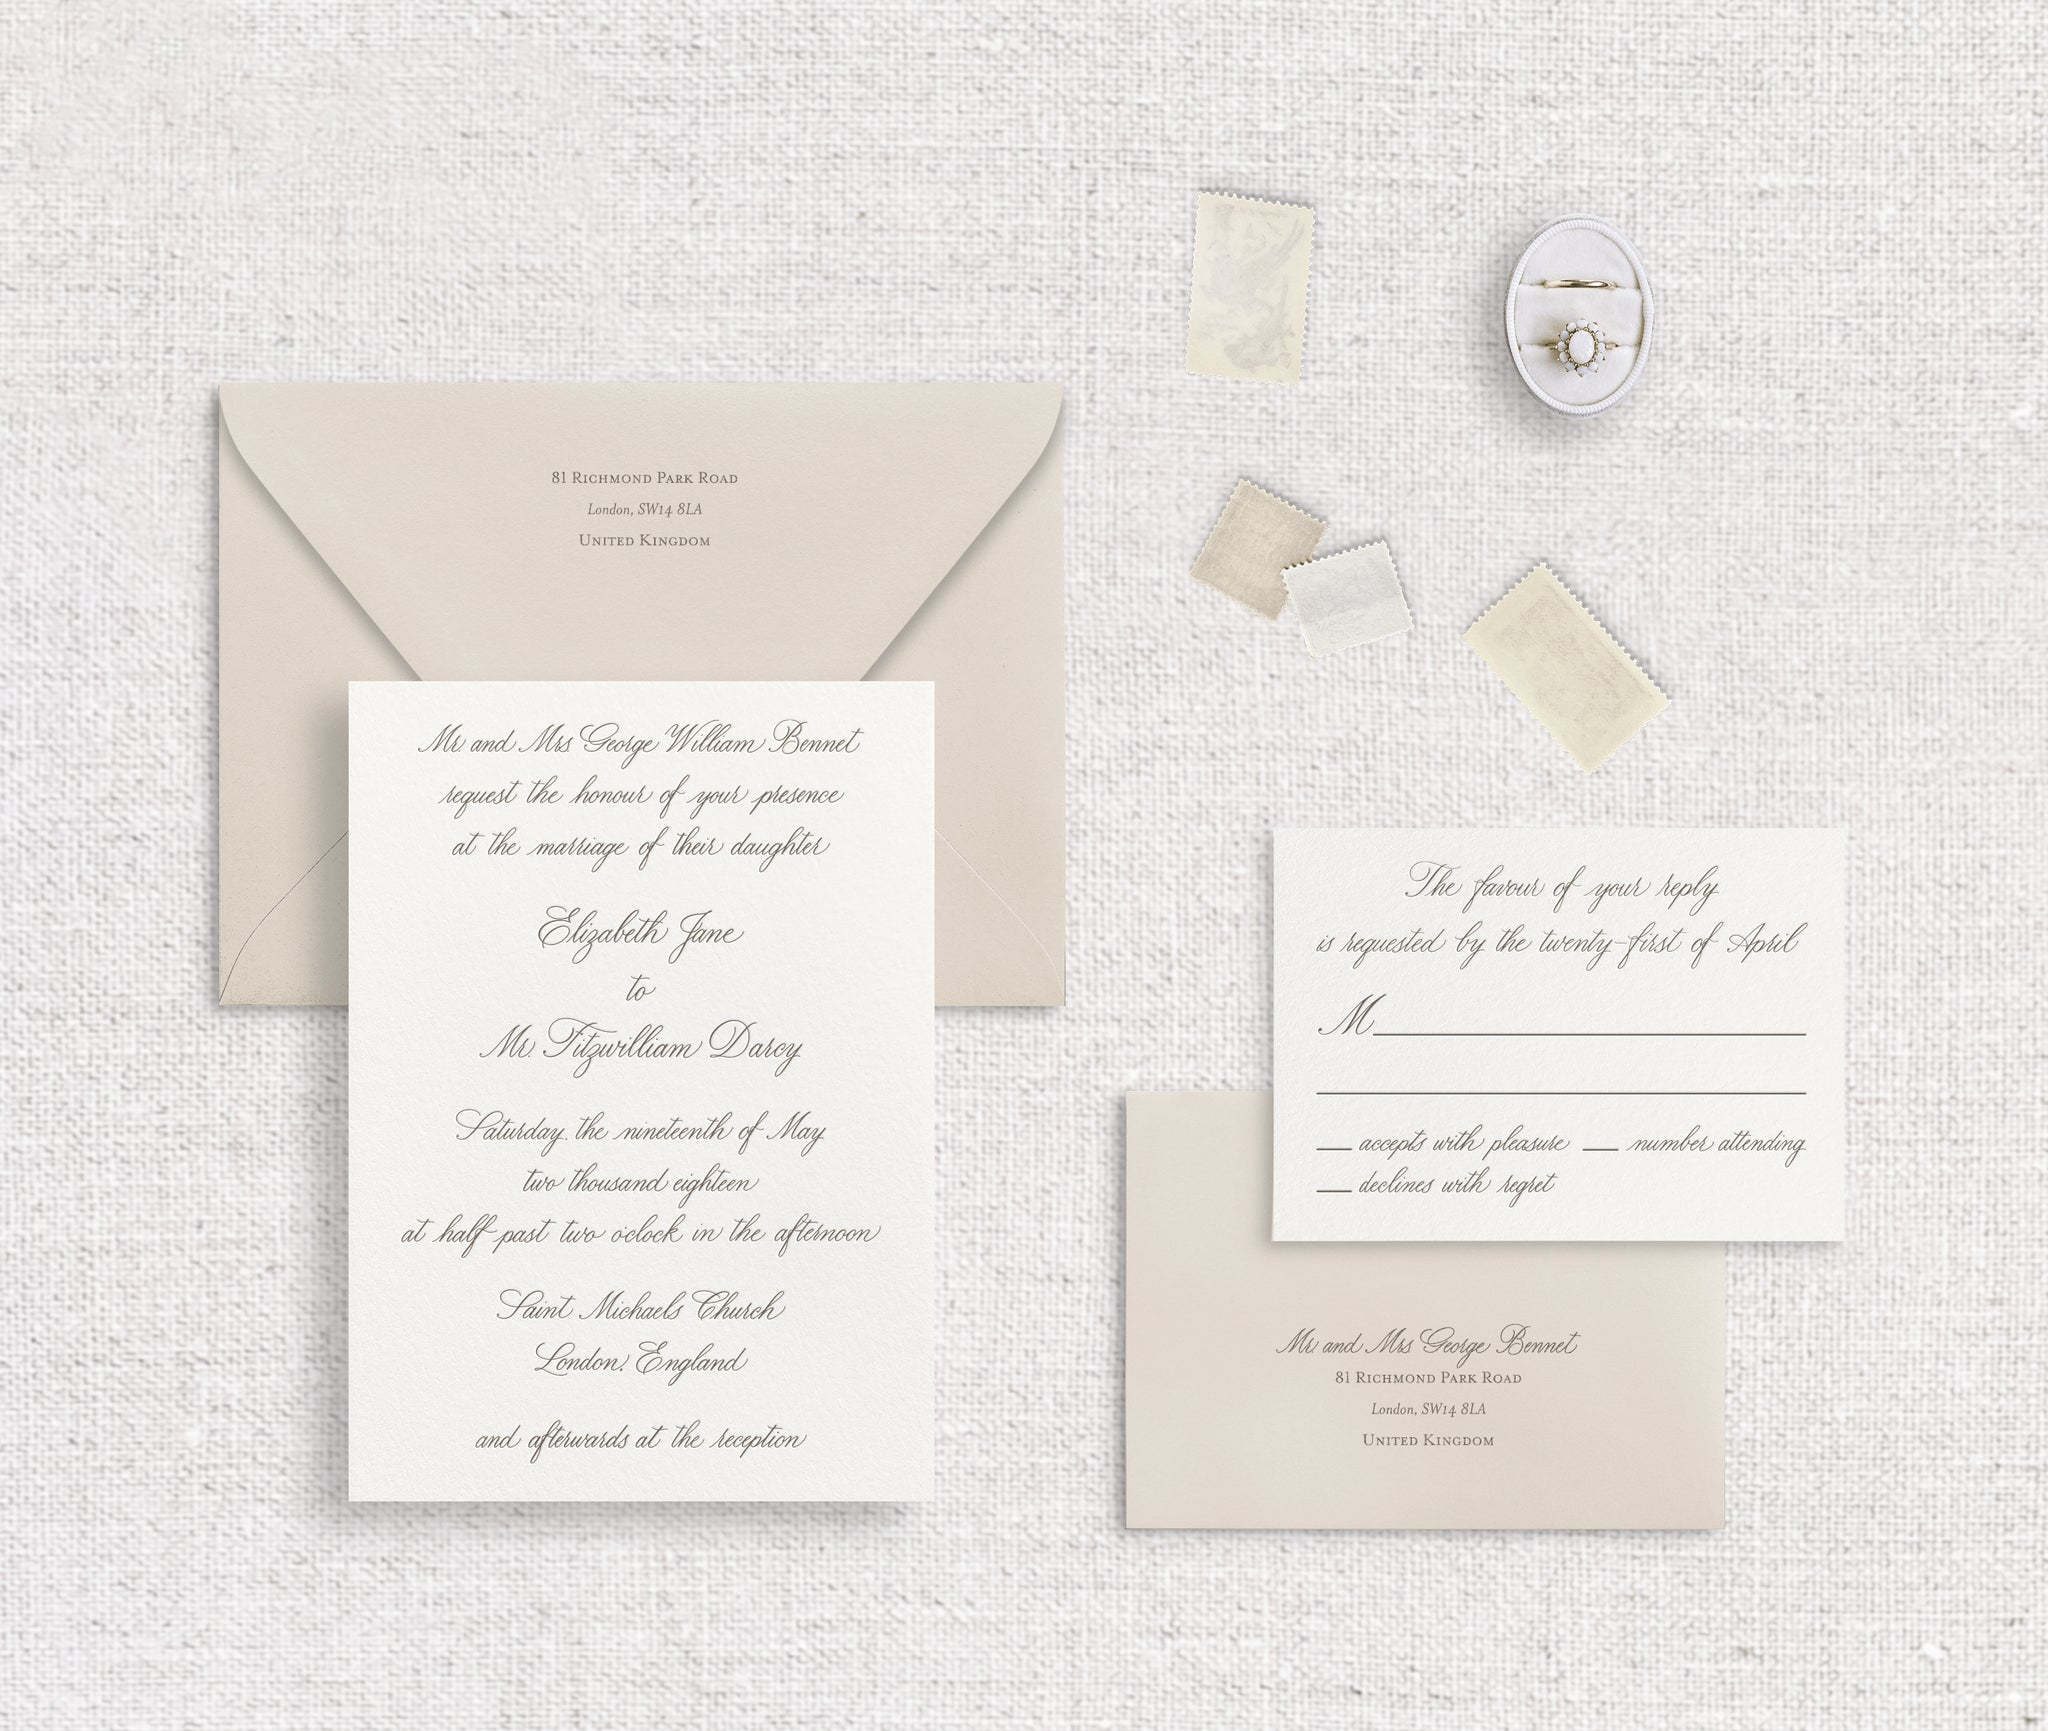 Elizabeth invitation and response card letterpressed in pewter ink on ivory stock with nude envelopes digitally printed in pewter ink